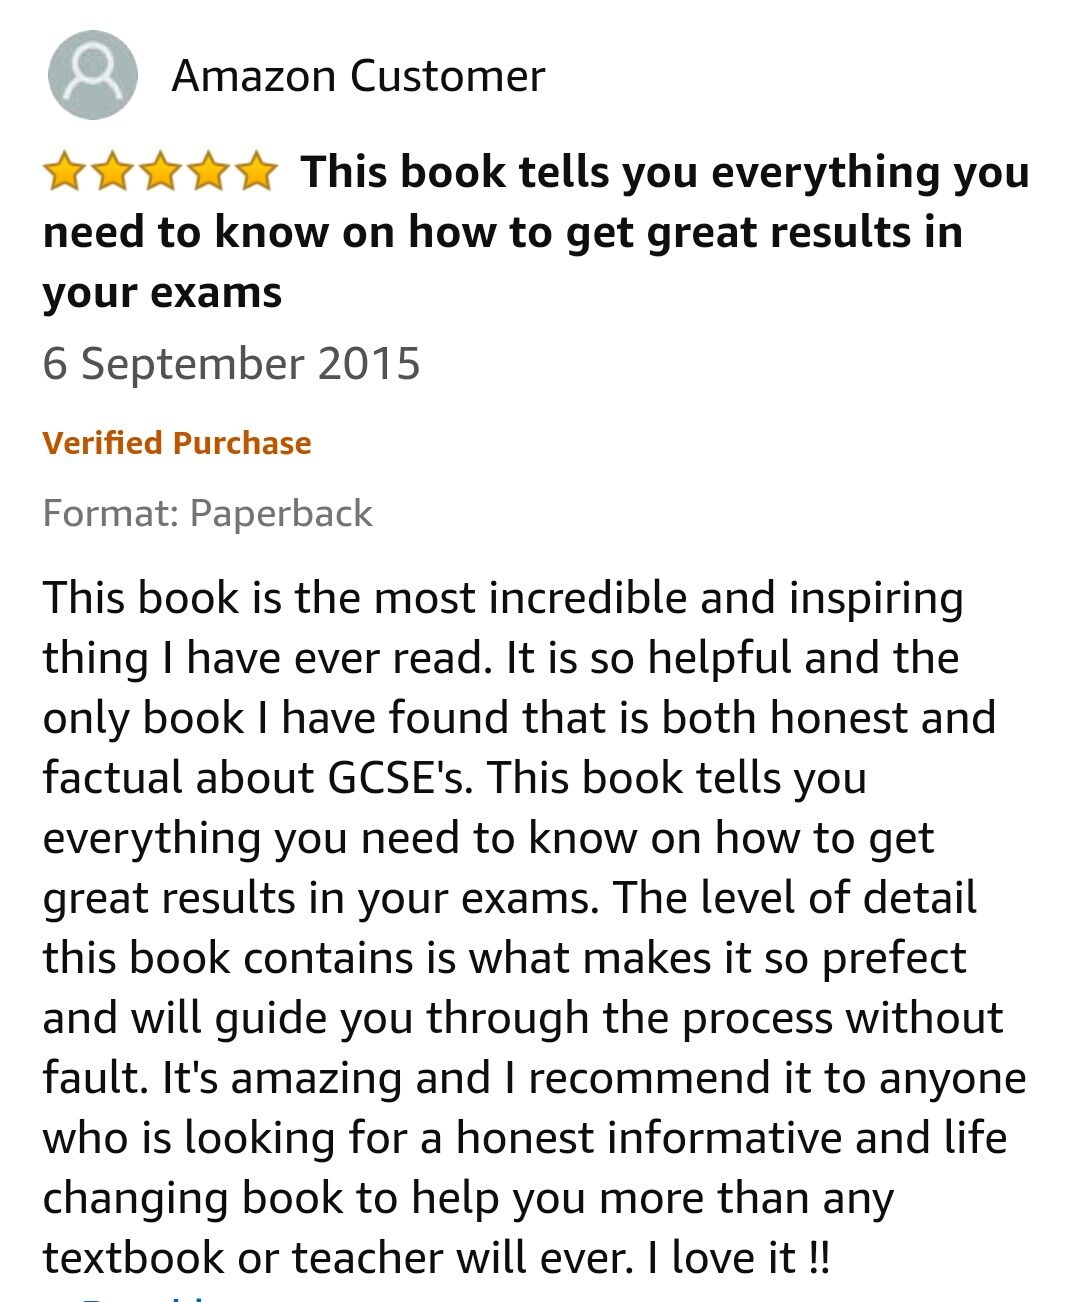 GCSE Reviews 75